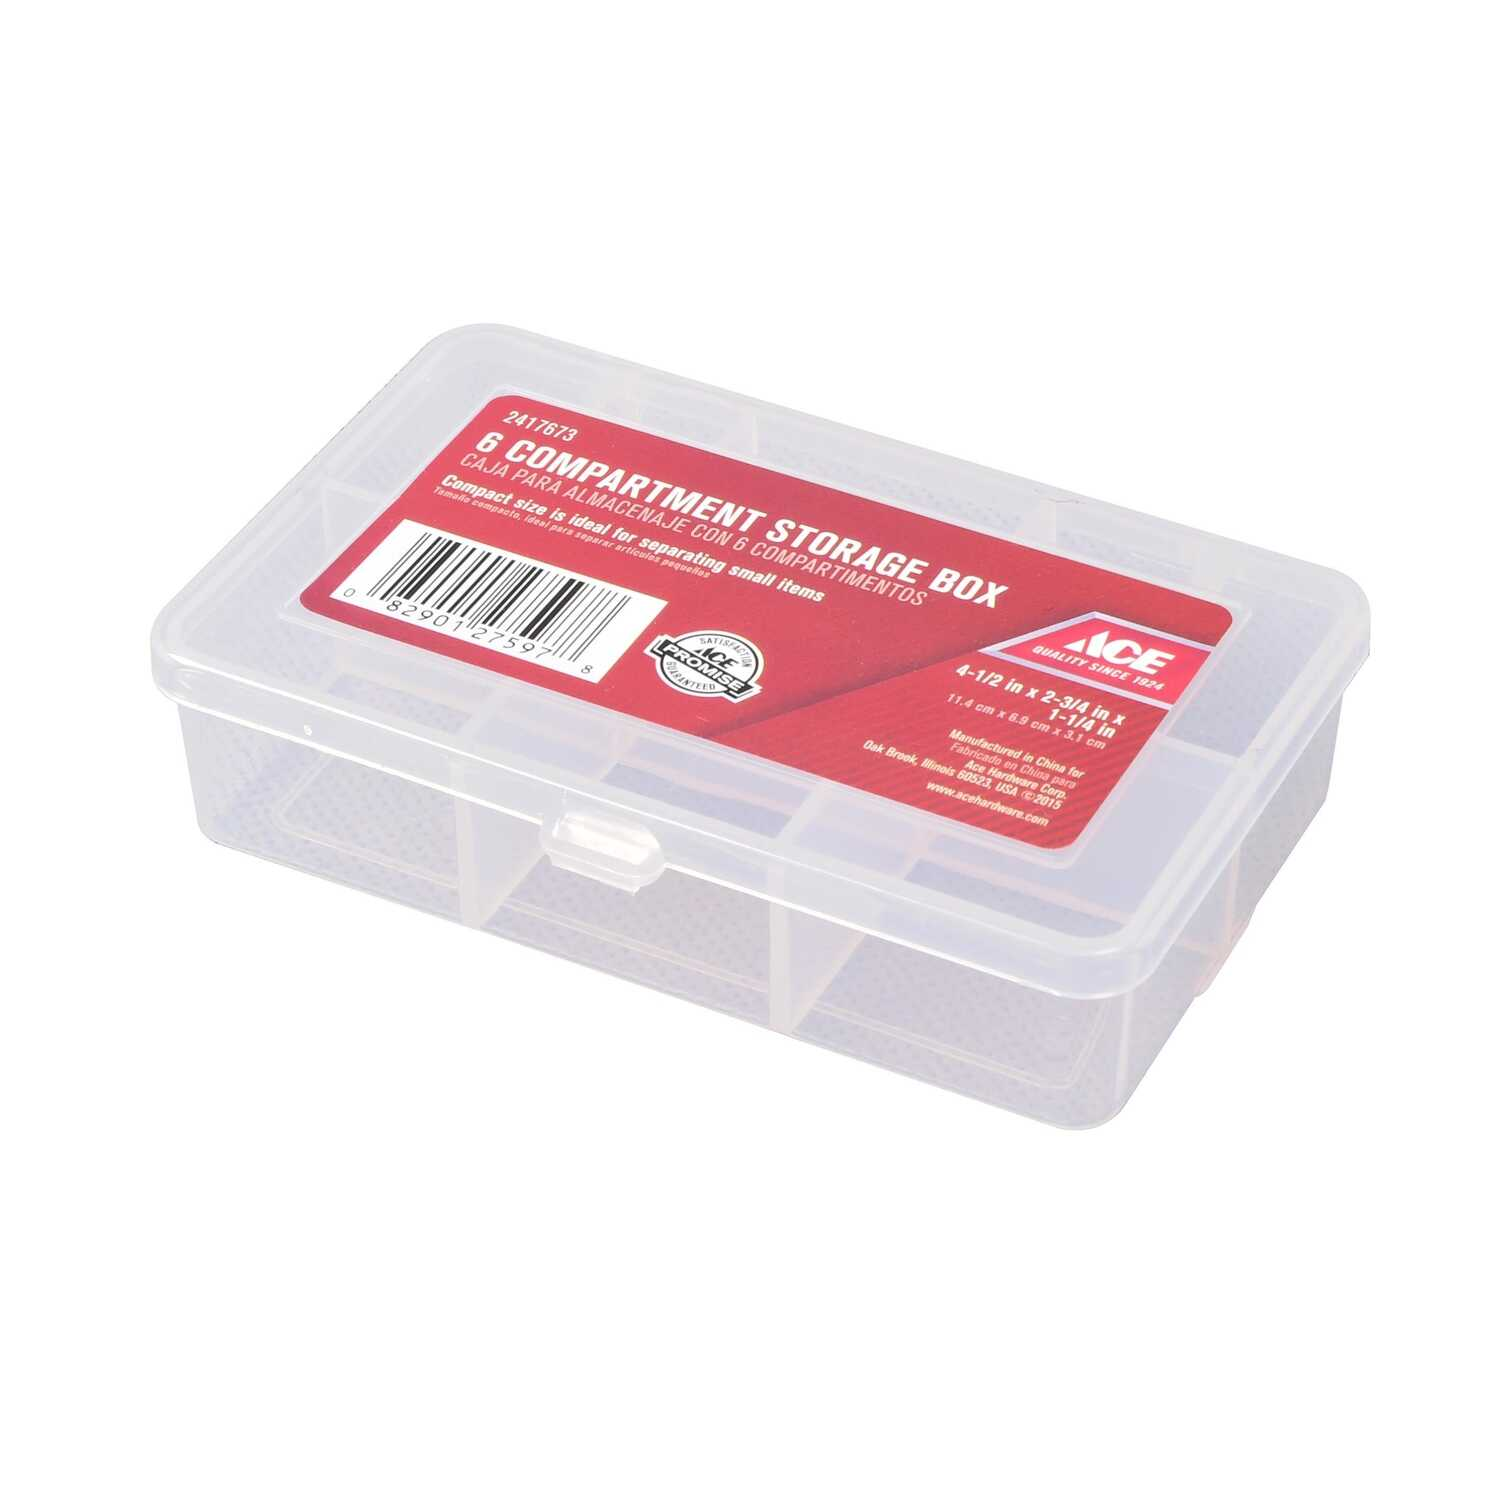 Ace  4-1/2 in. L x 2-3/4 in. W x 1-1/4 in. H Tool Storage Bin  Plastic  6 compartments Clear